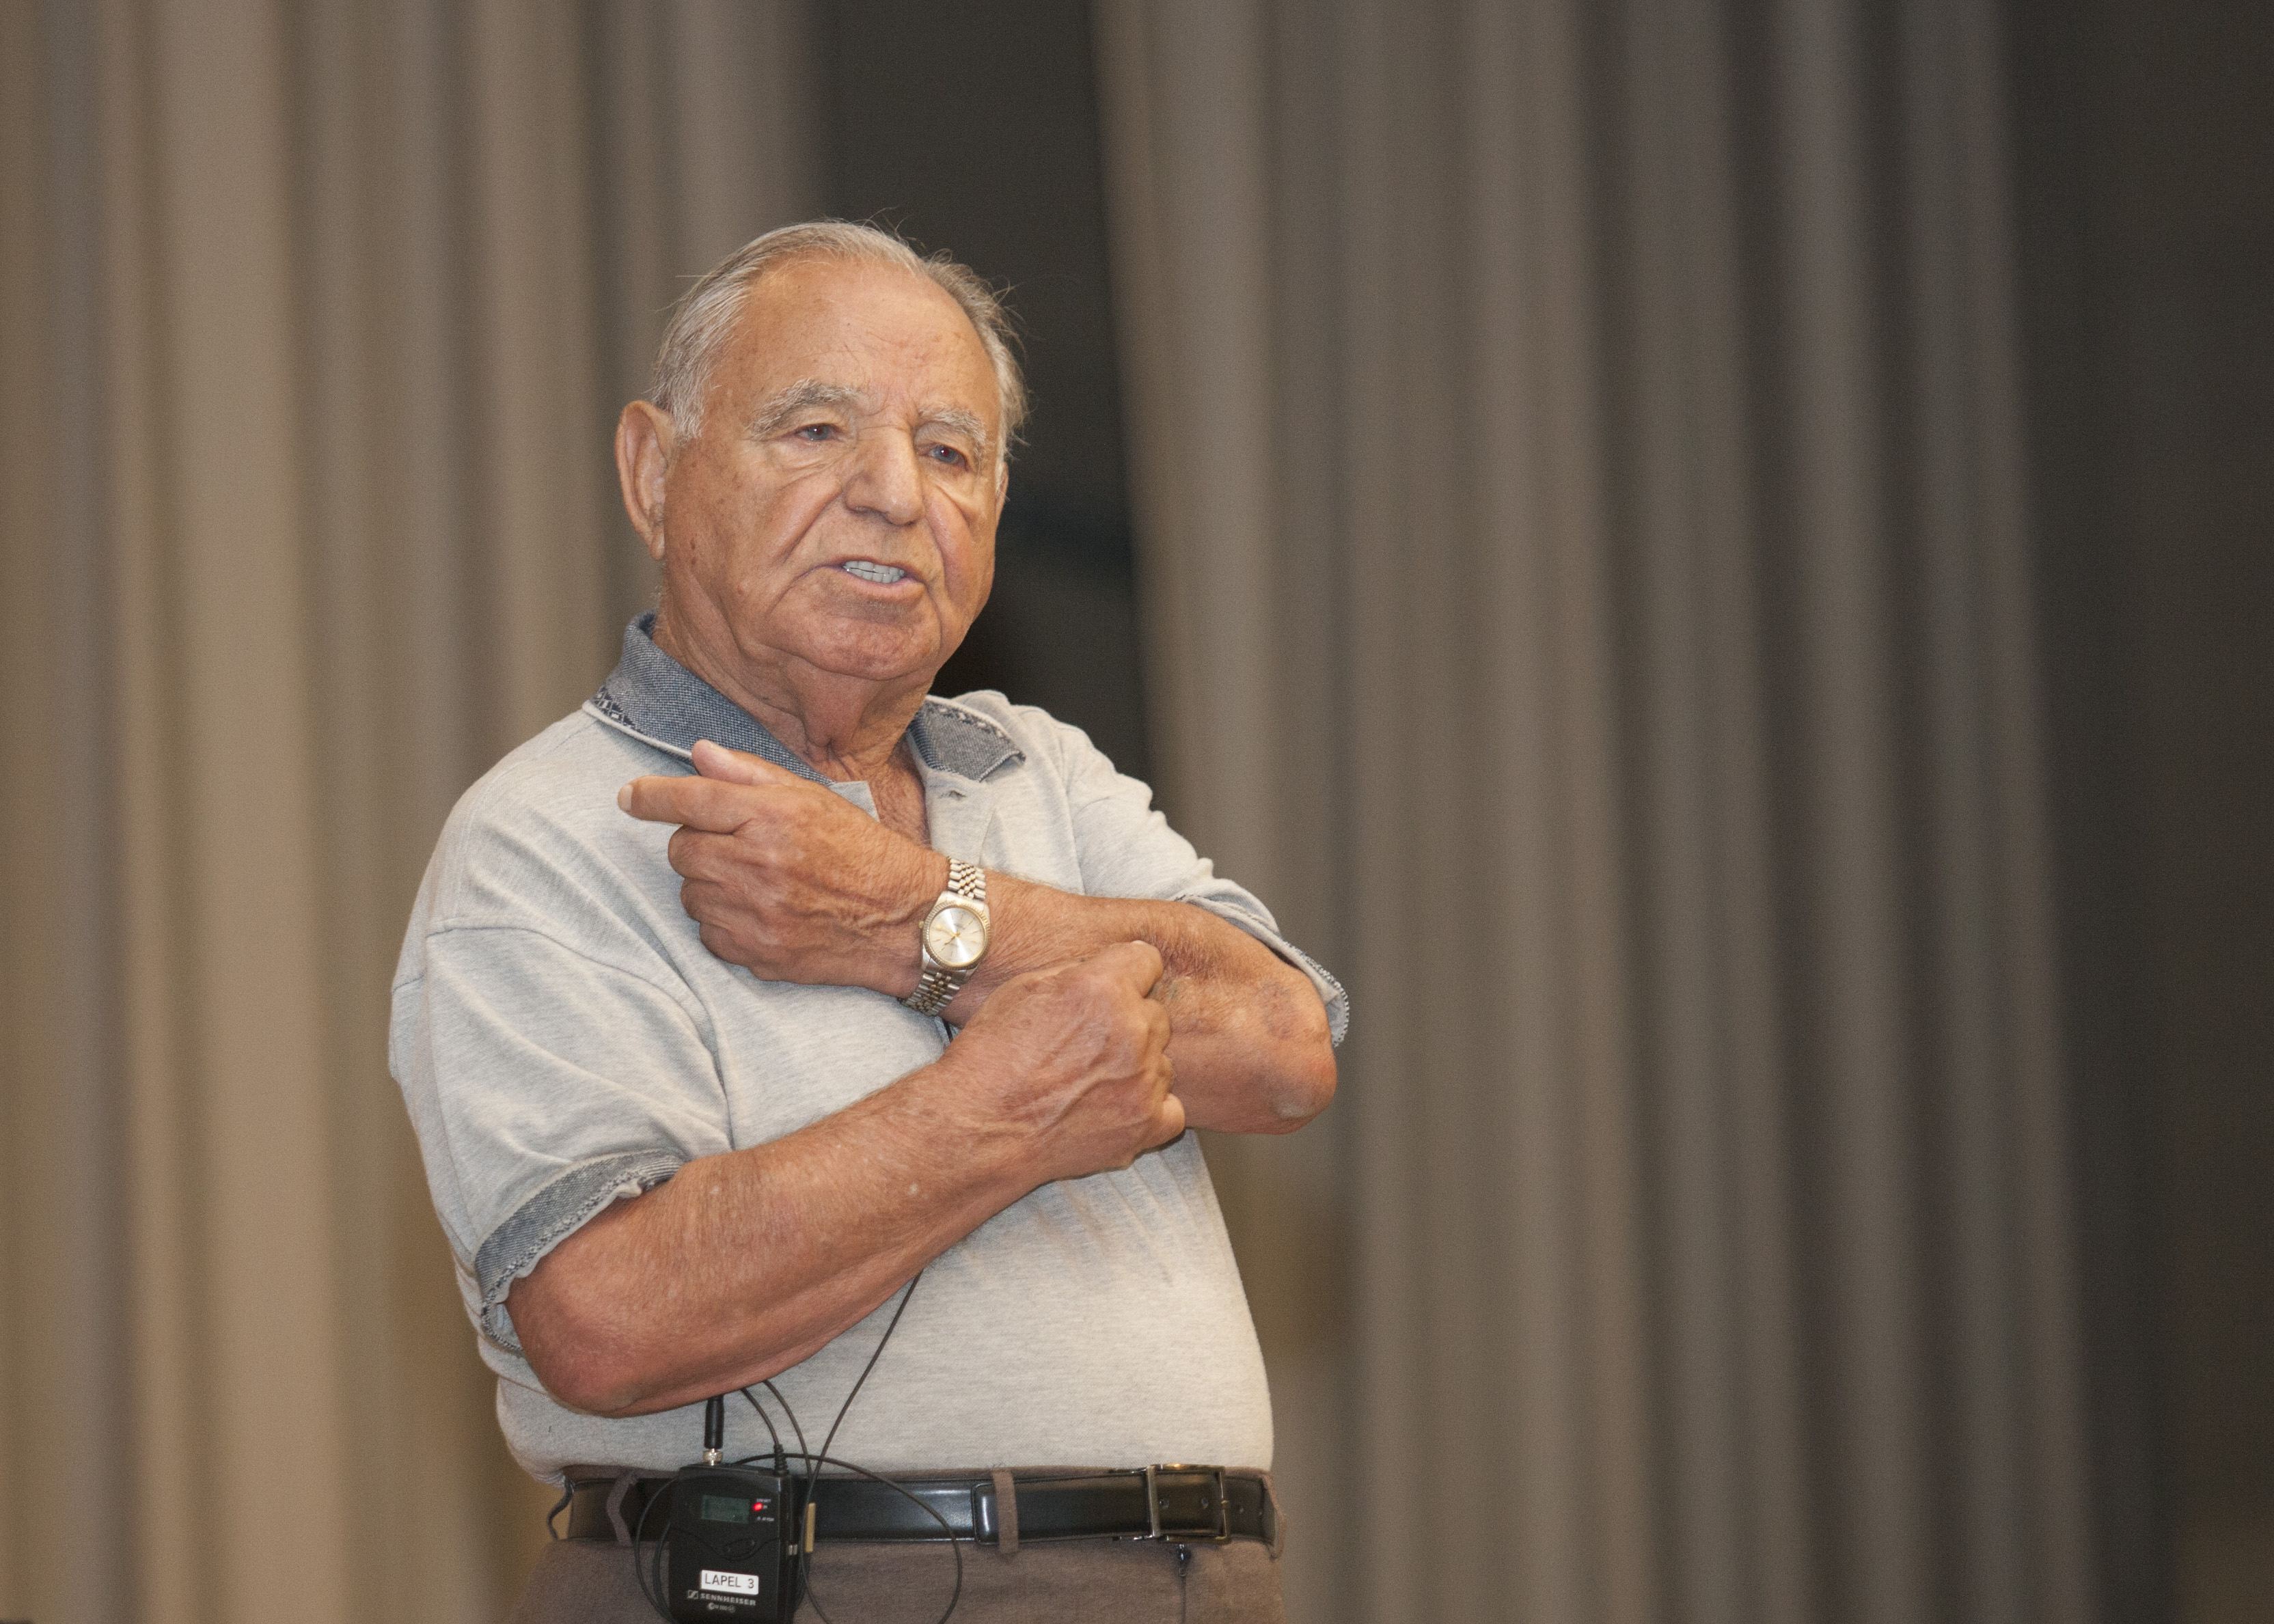 holocaust survivor 'owes life' to america > edwards air force base